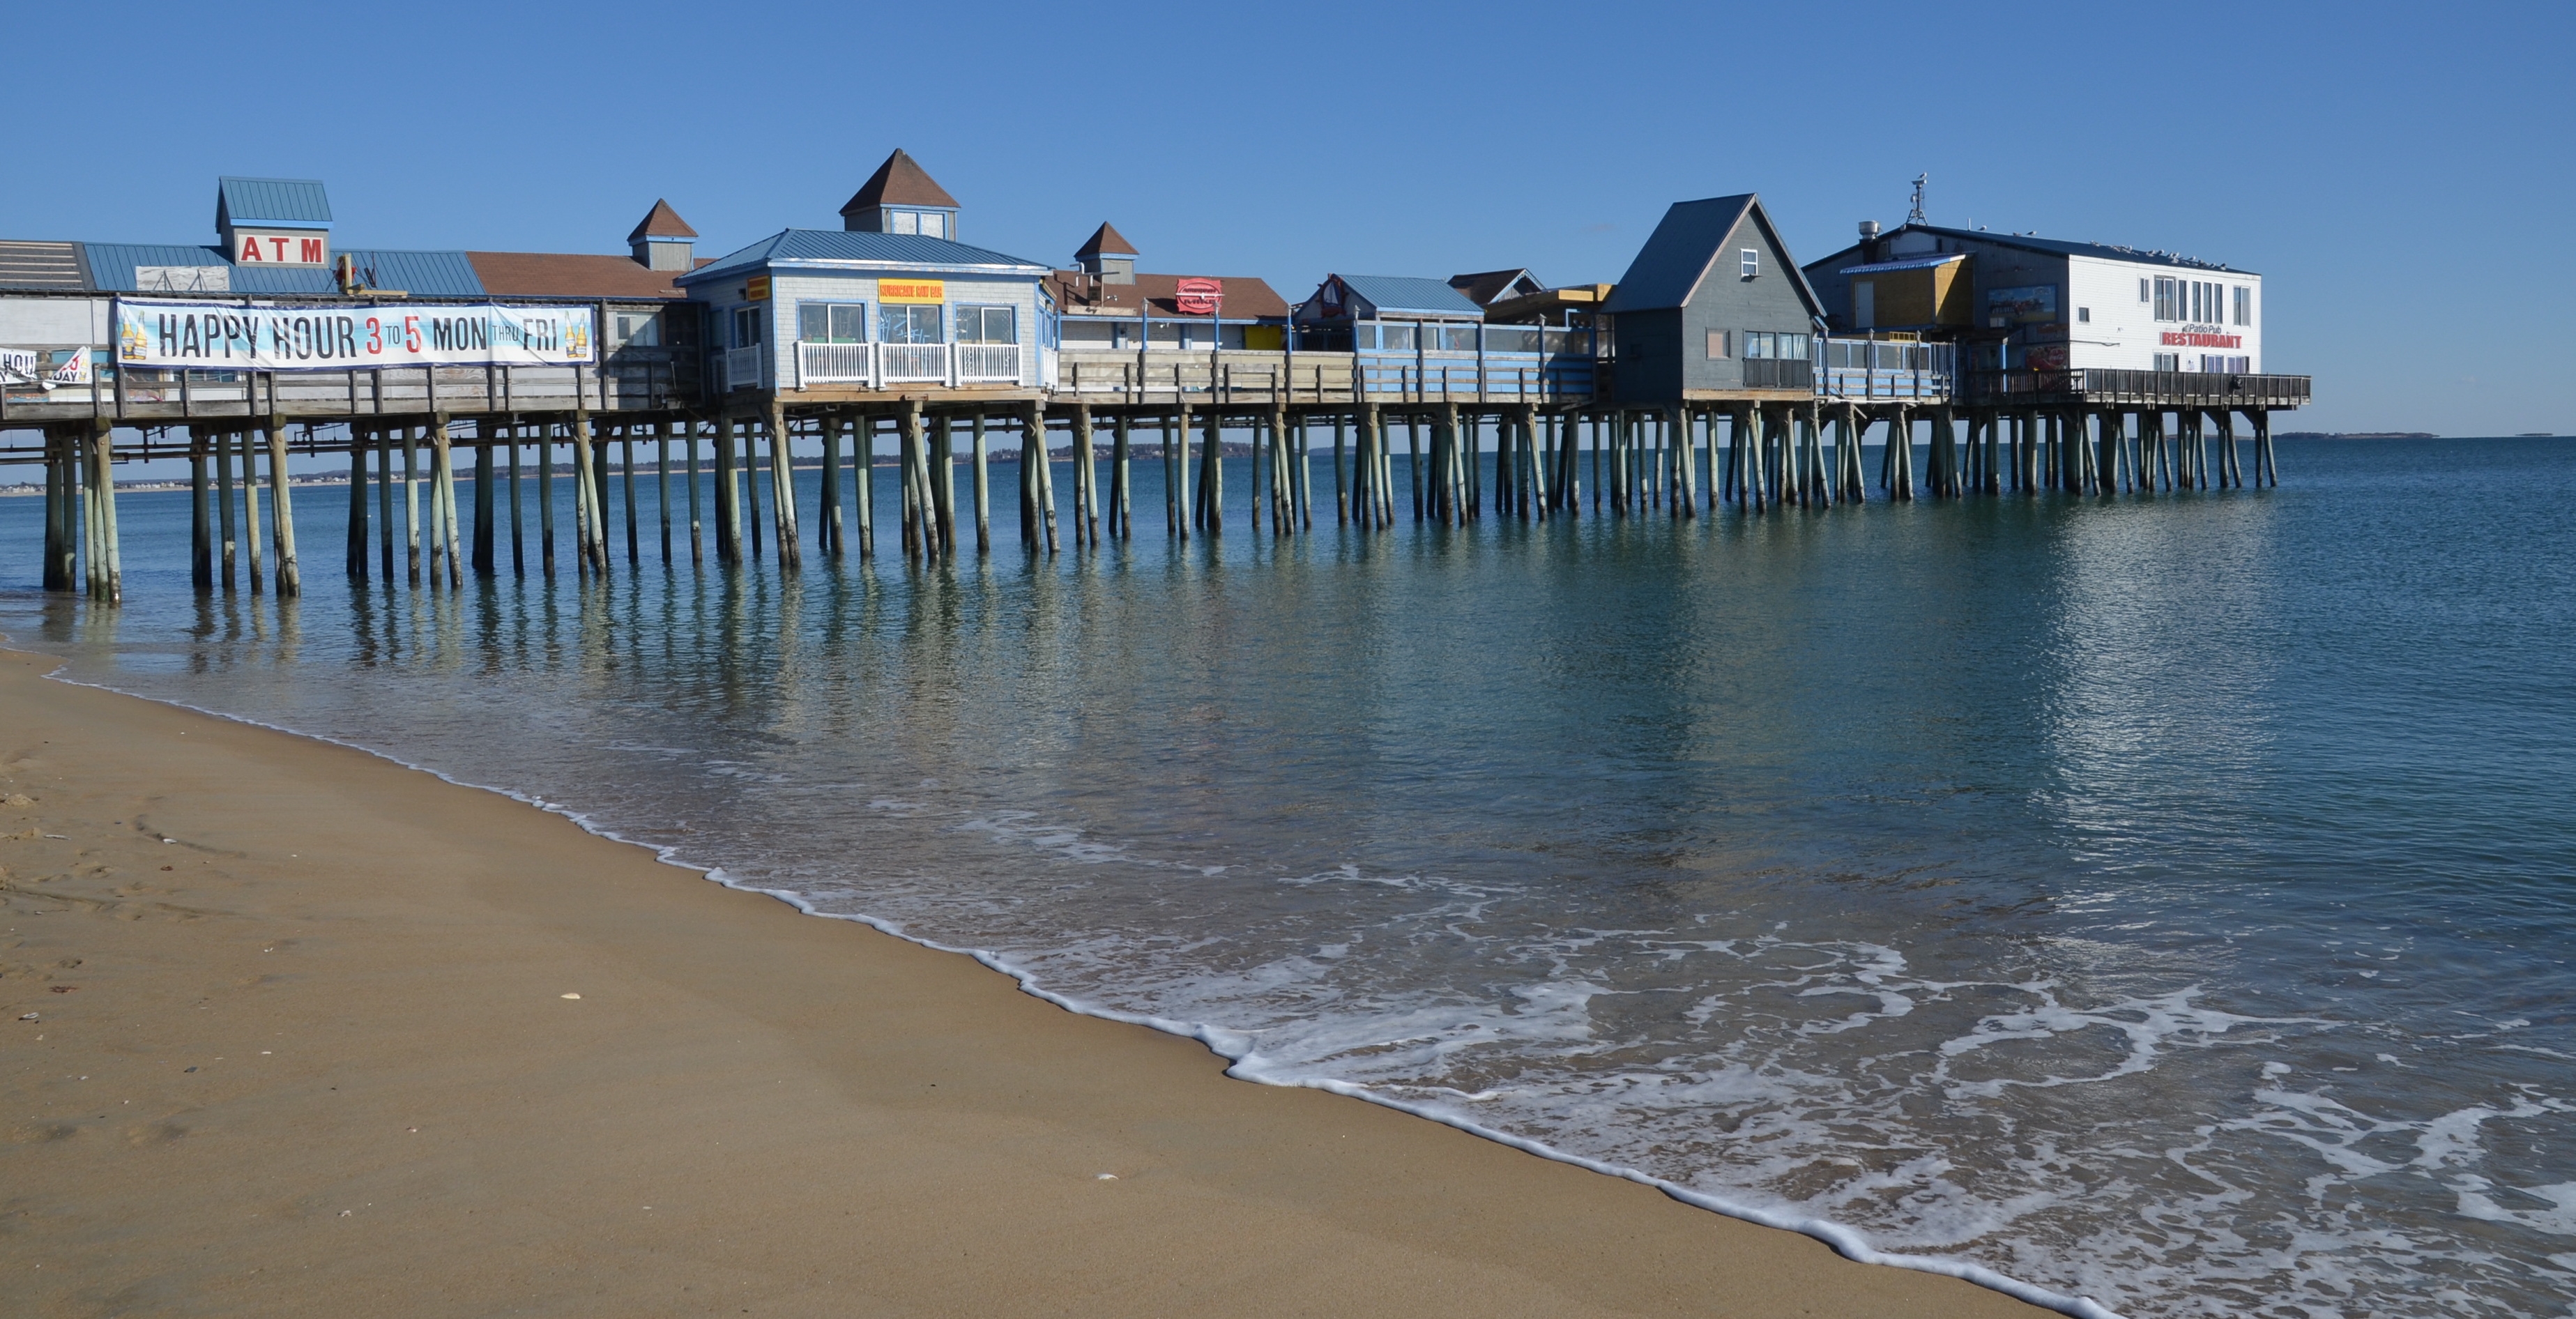 Old Orchard Beach Me Beach 1400x686 Ratio